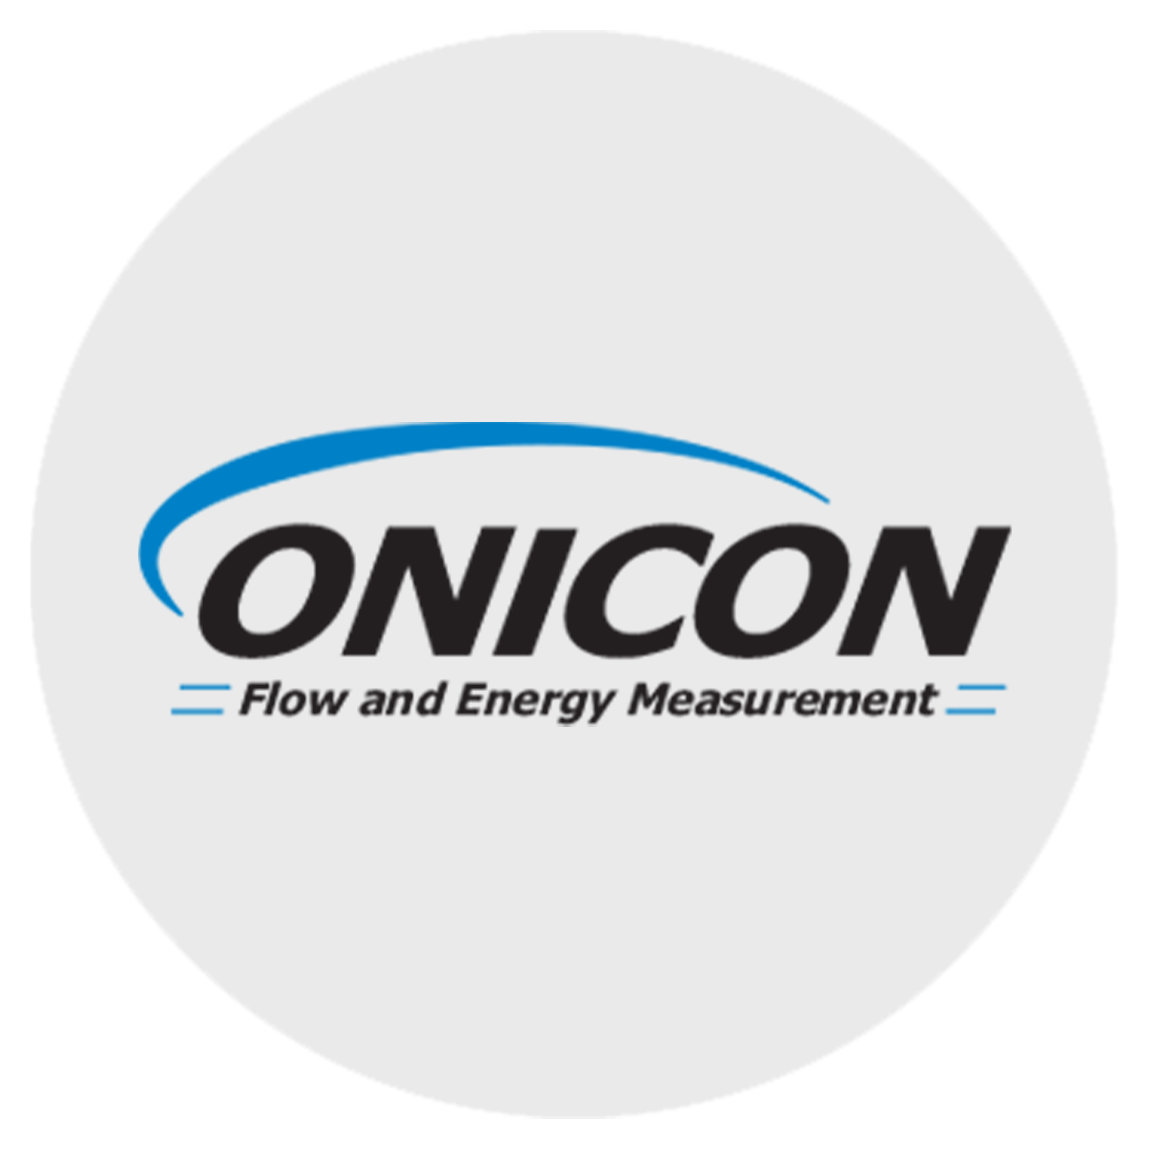 http://walterscontrols.net/wp-content/uploads/2020/01/onicon.png